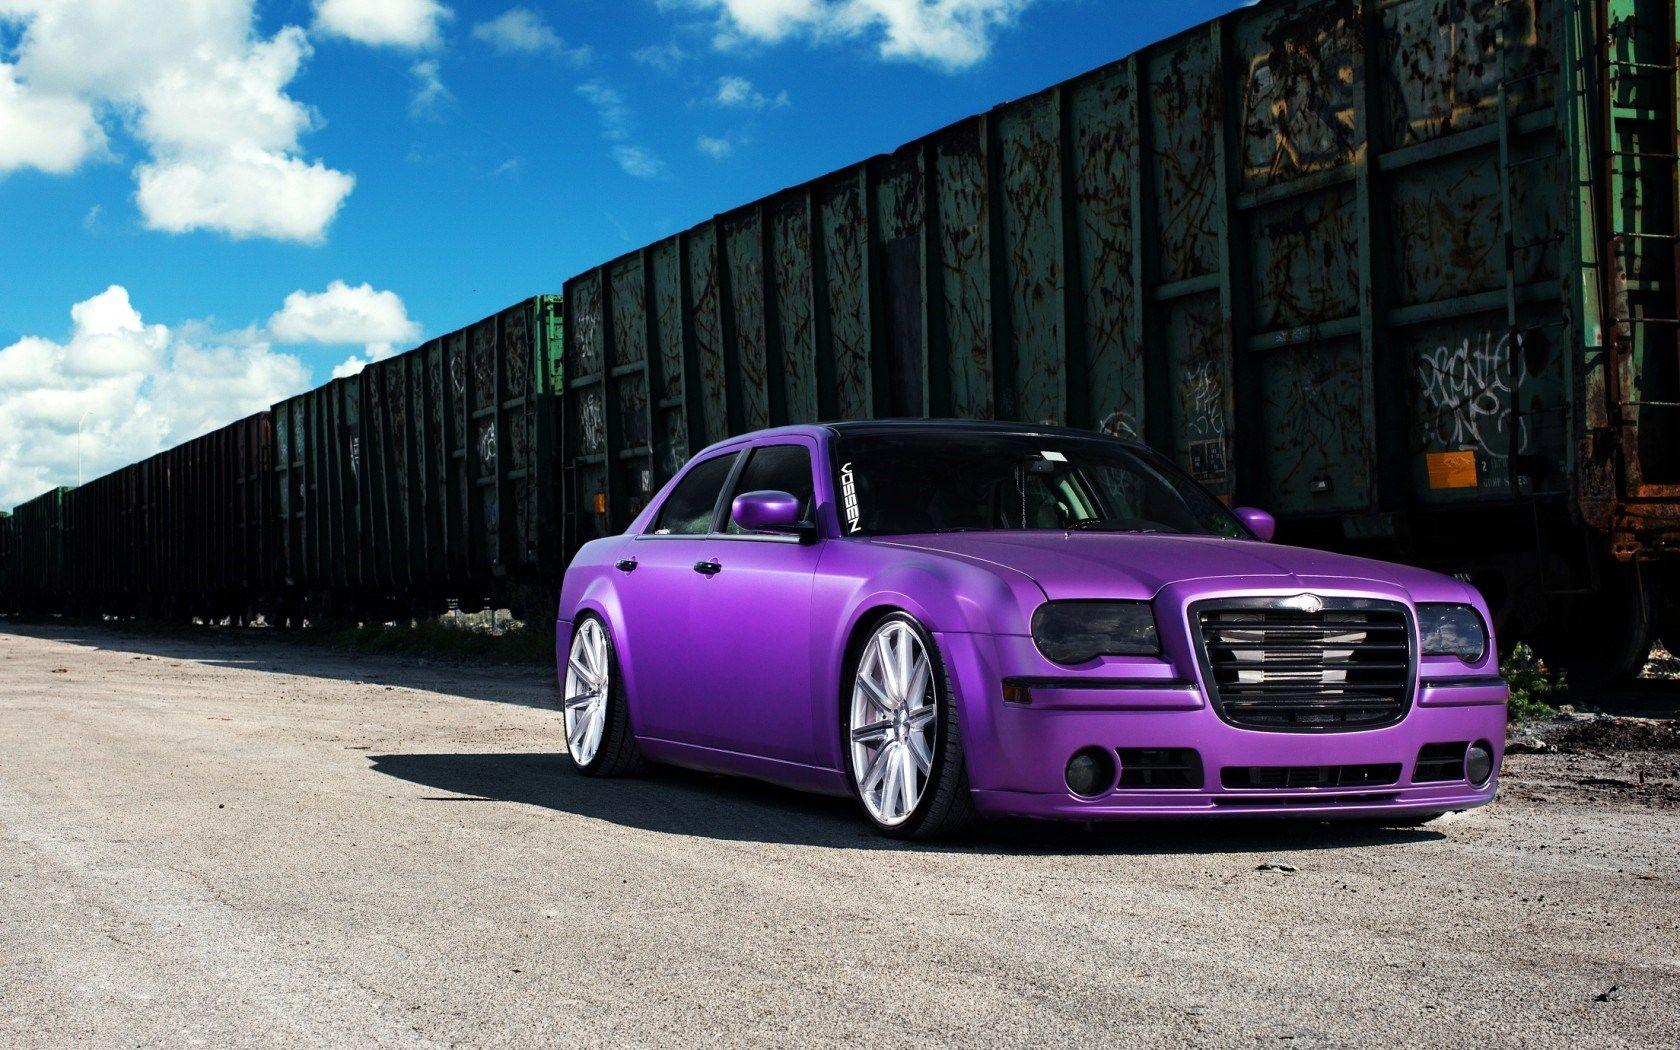 Chrysler Purple Car HD Wallpaper Expensive Cars,HD Wallpaper,Images ...